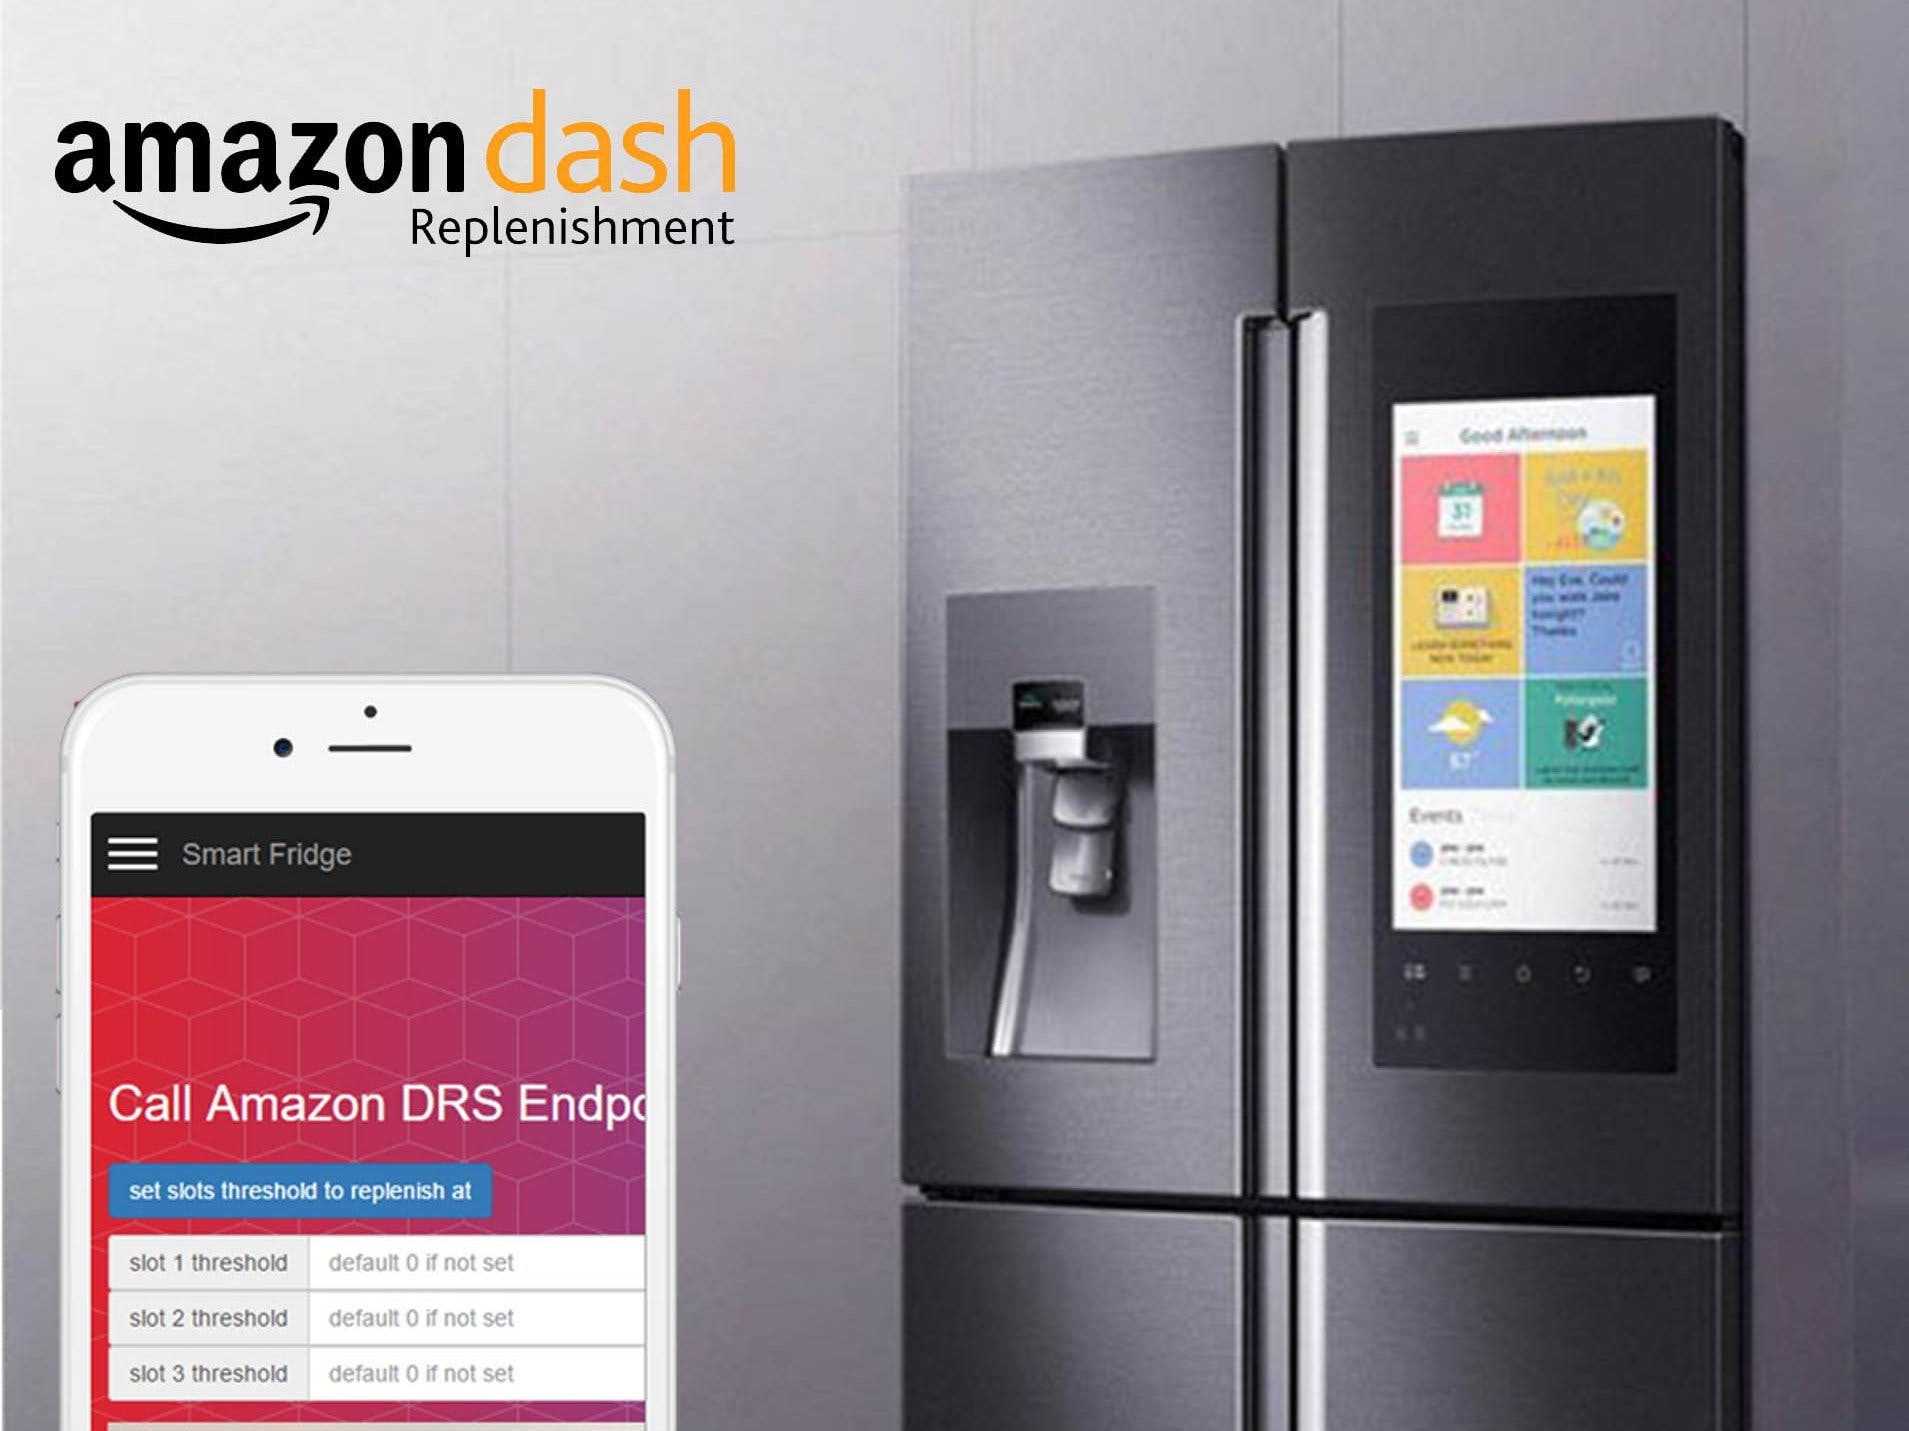 Smart fridge (self-replenishing) + Amazon DRS php API